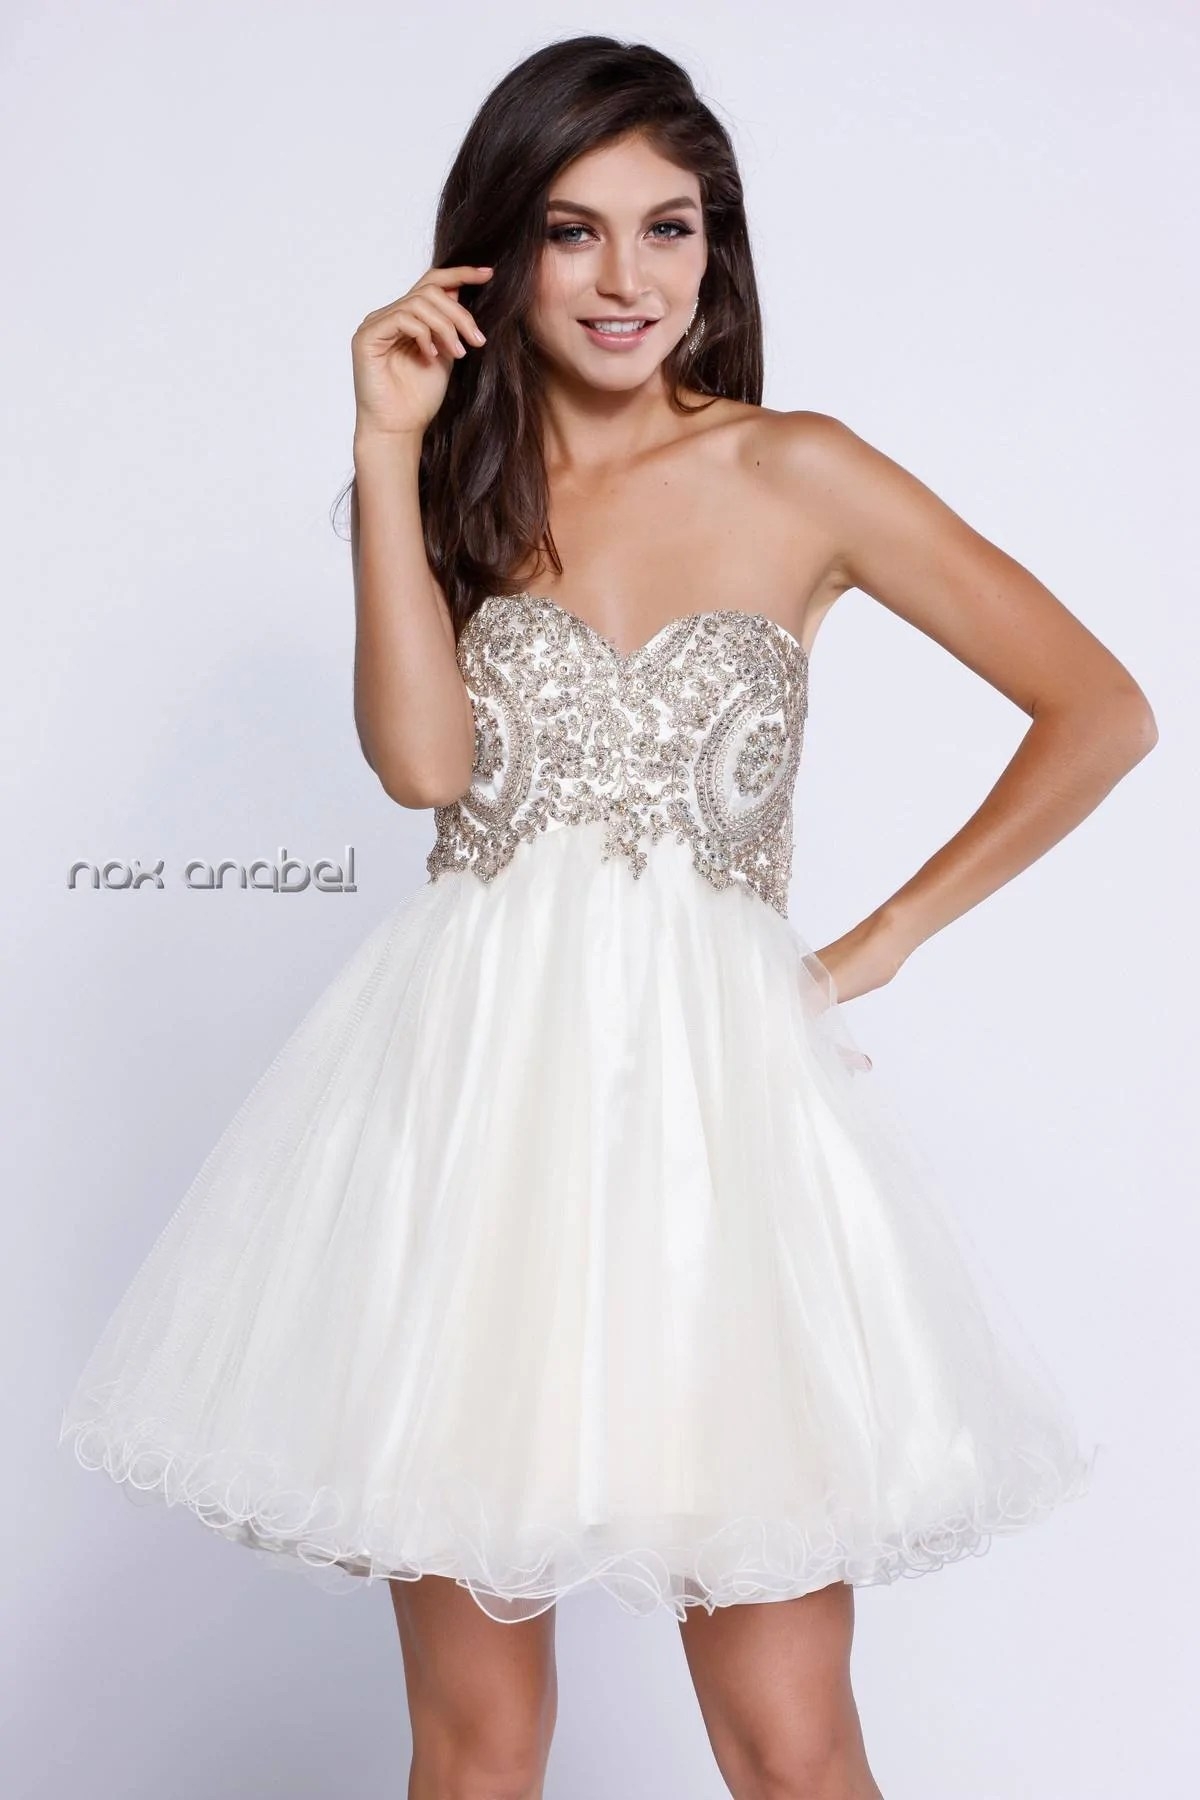 Strapless Poofy Homecoming Short Dress Appliqued Bodice